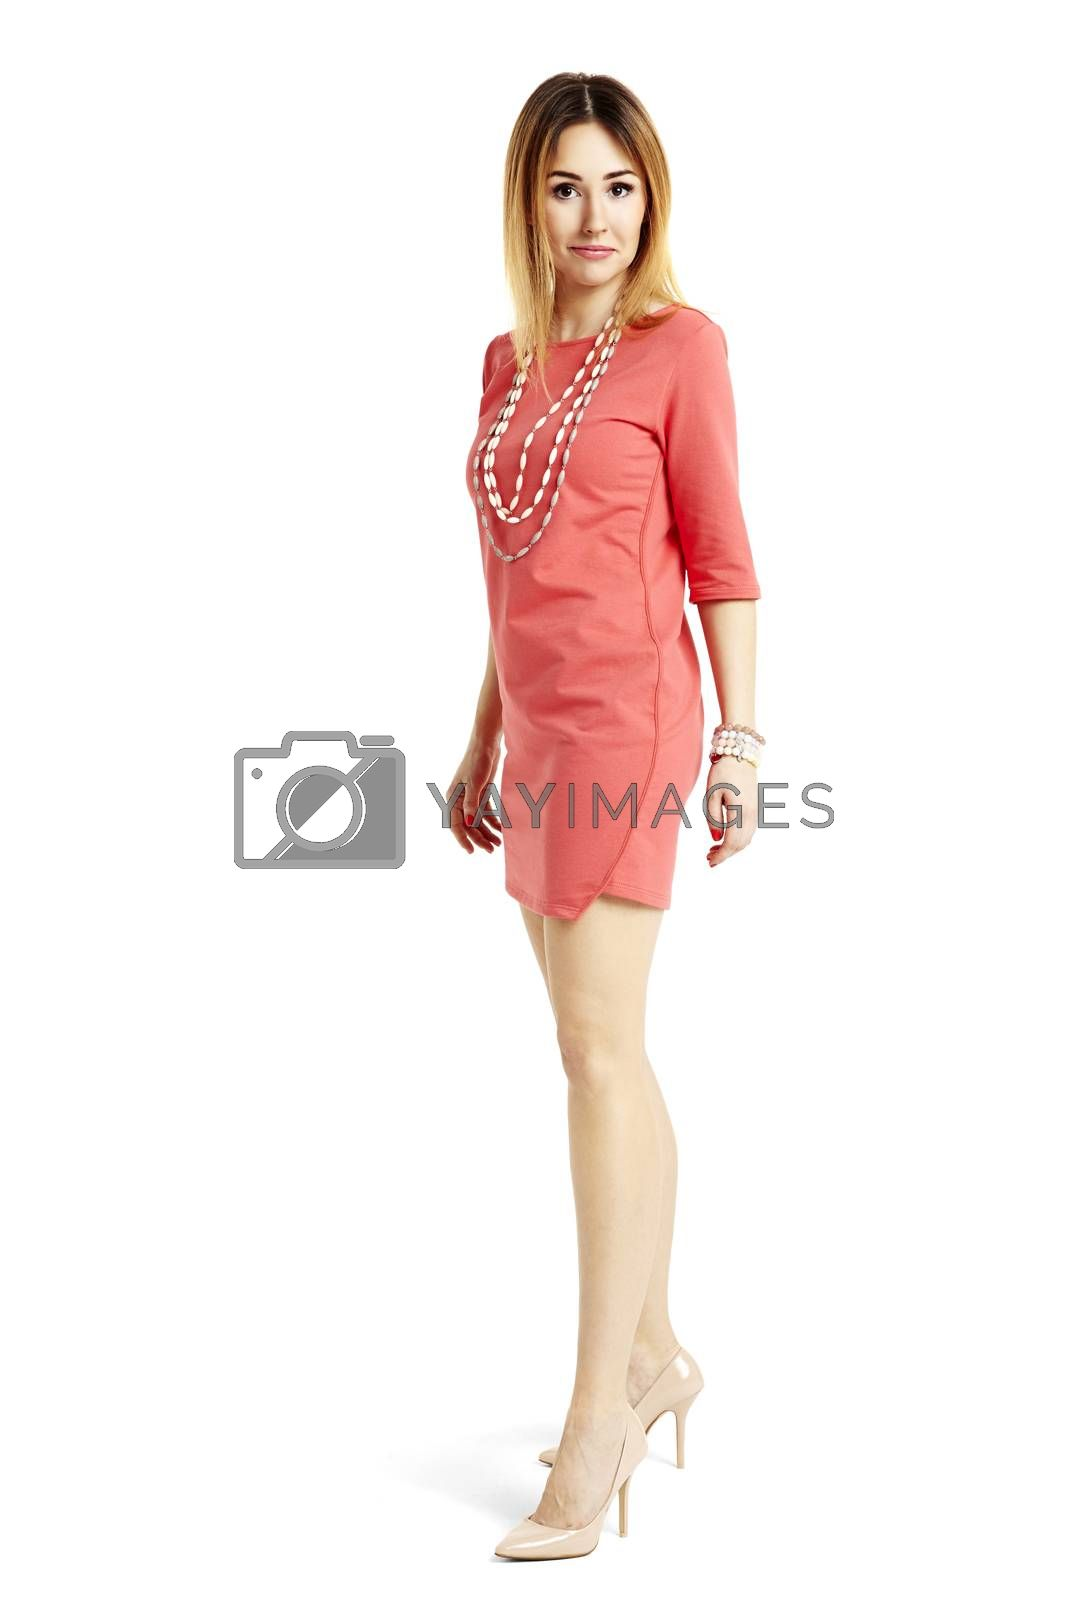 Studio shot of beautiful woman in red dress standing against white background.